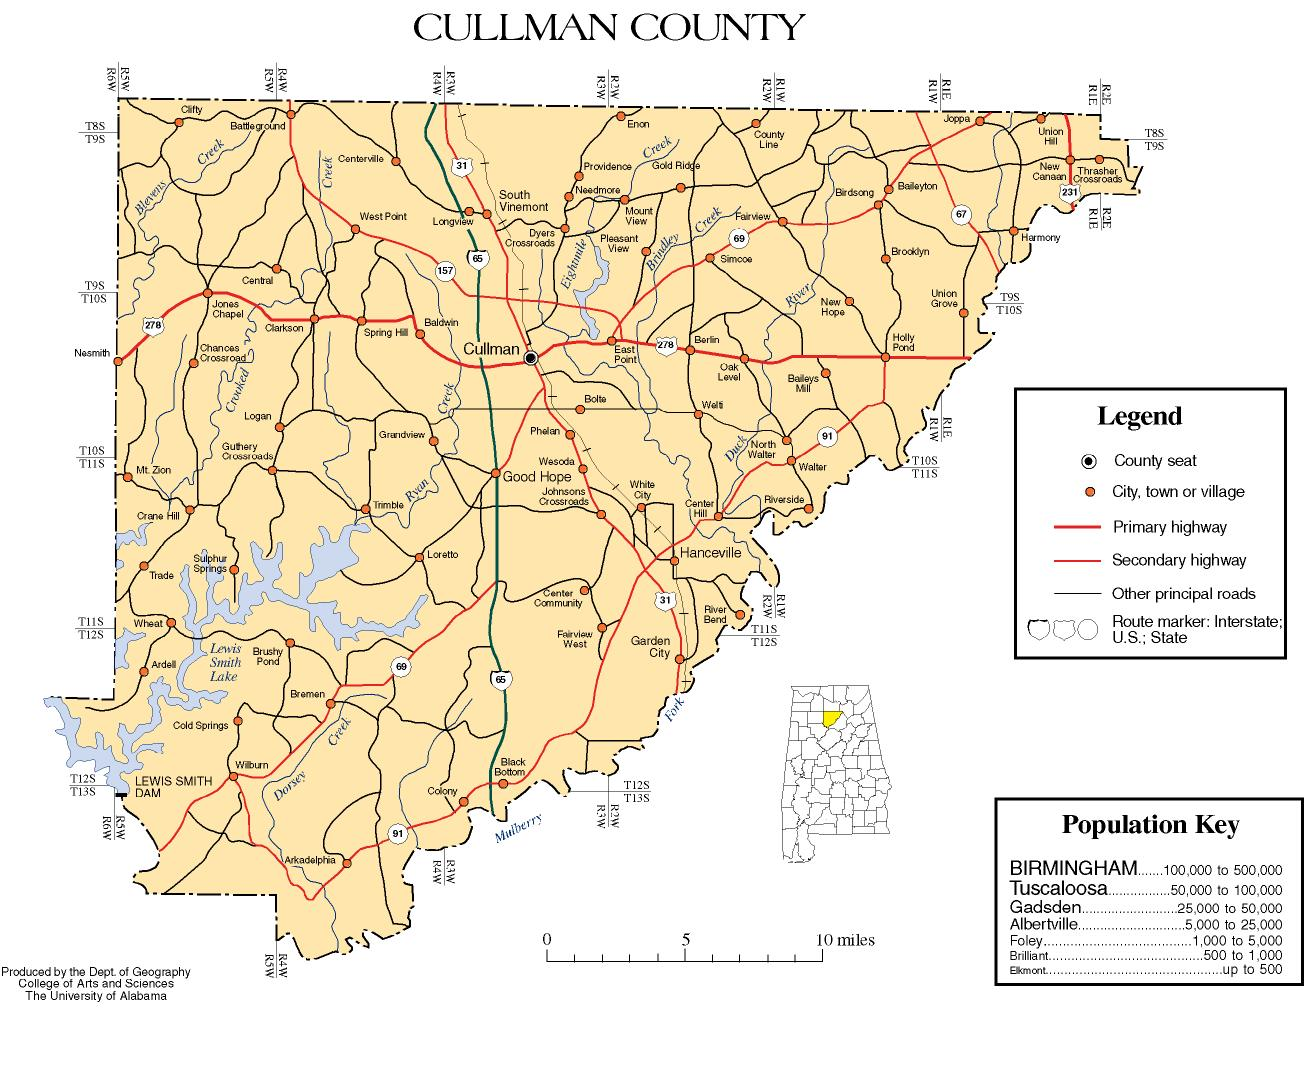 Maps of Cullman Countycullman county